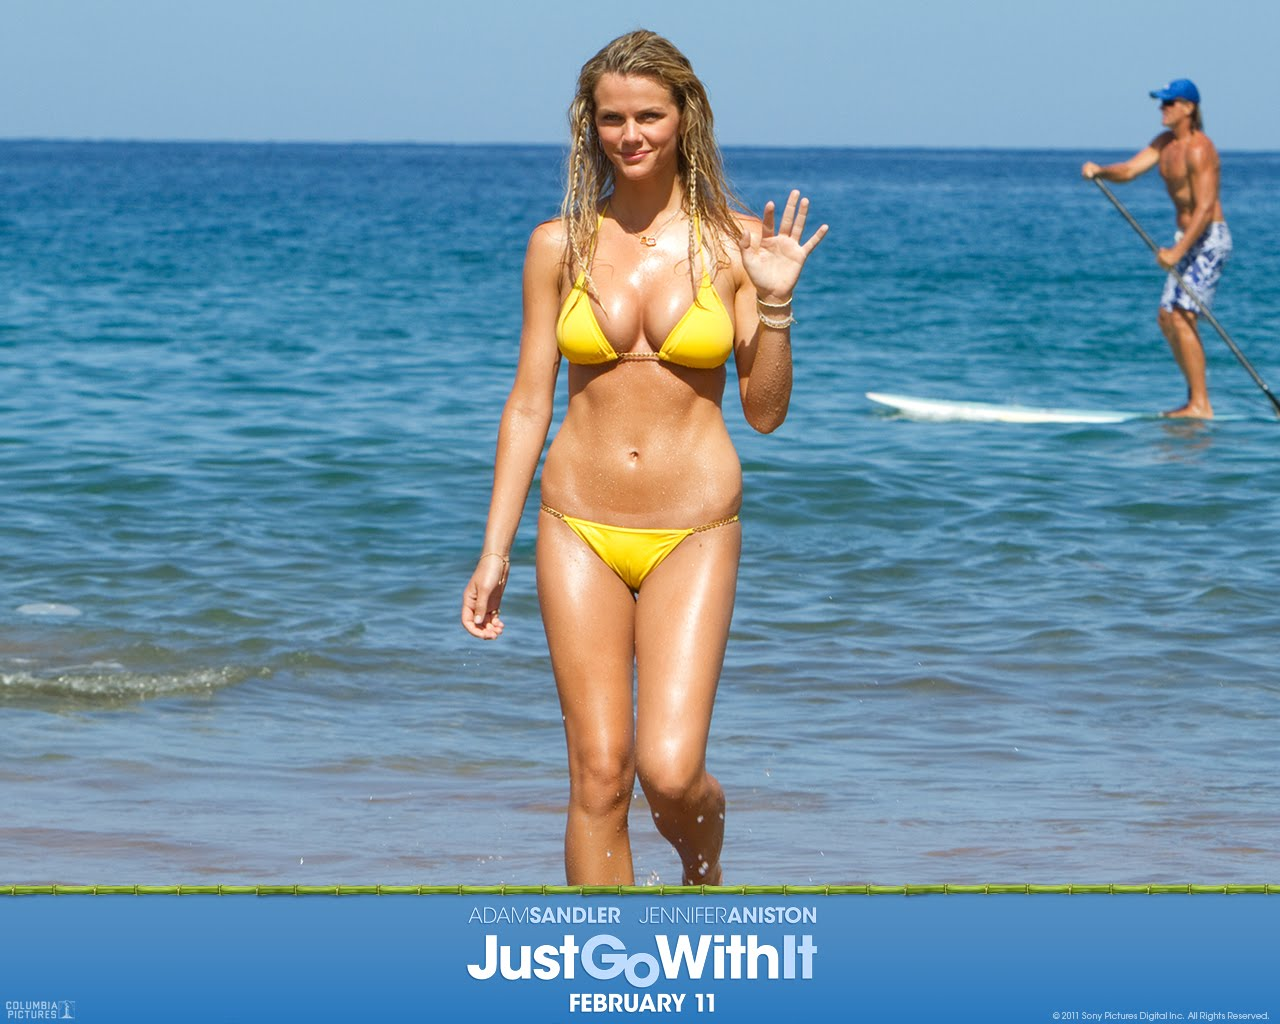 http://4.bp.blogspot.com/-ZJDqCWgQ6P4/UEuZqncsMpI/AAAAAAAADpY/Ezgv2xHRIUM/s1600/Brooklyn_Decker_in_Just_Go_With_It_Wallpaper_4_1024.jpg